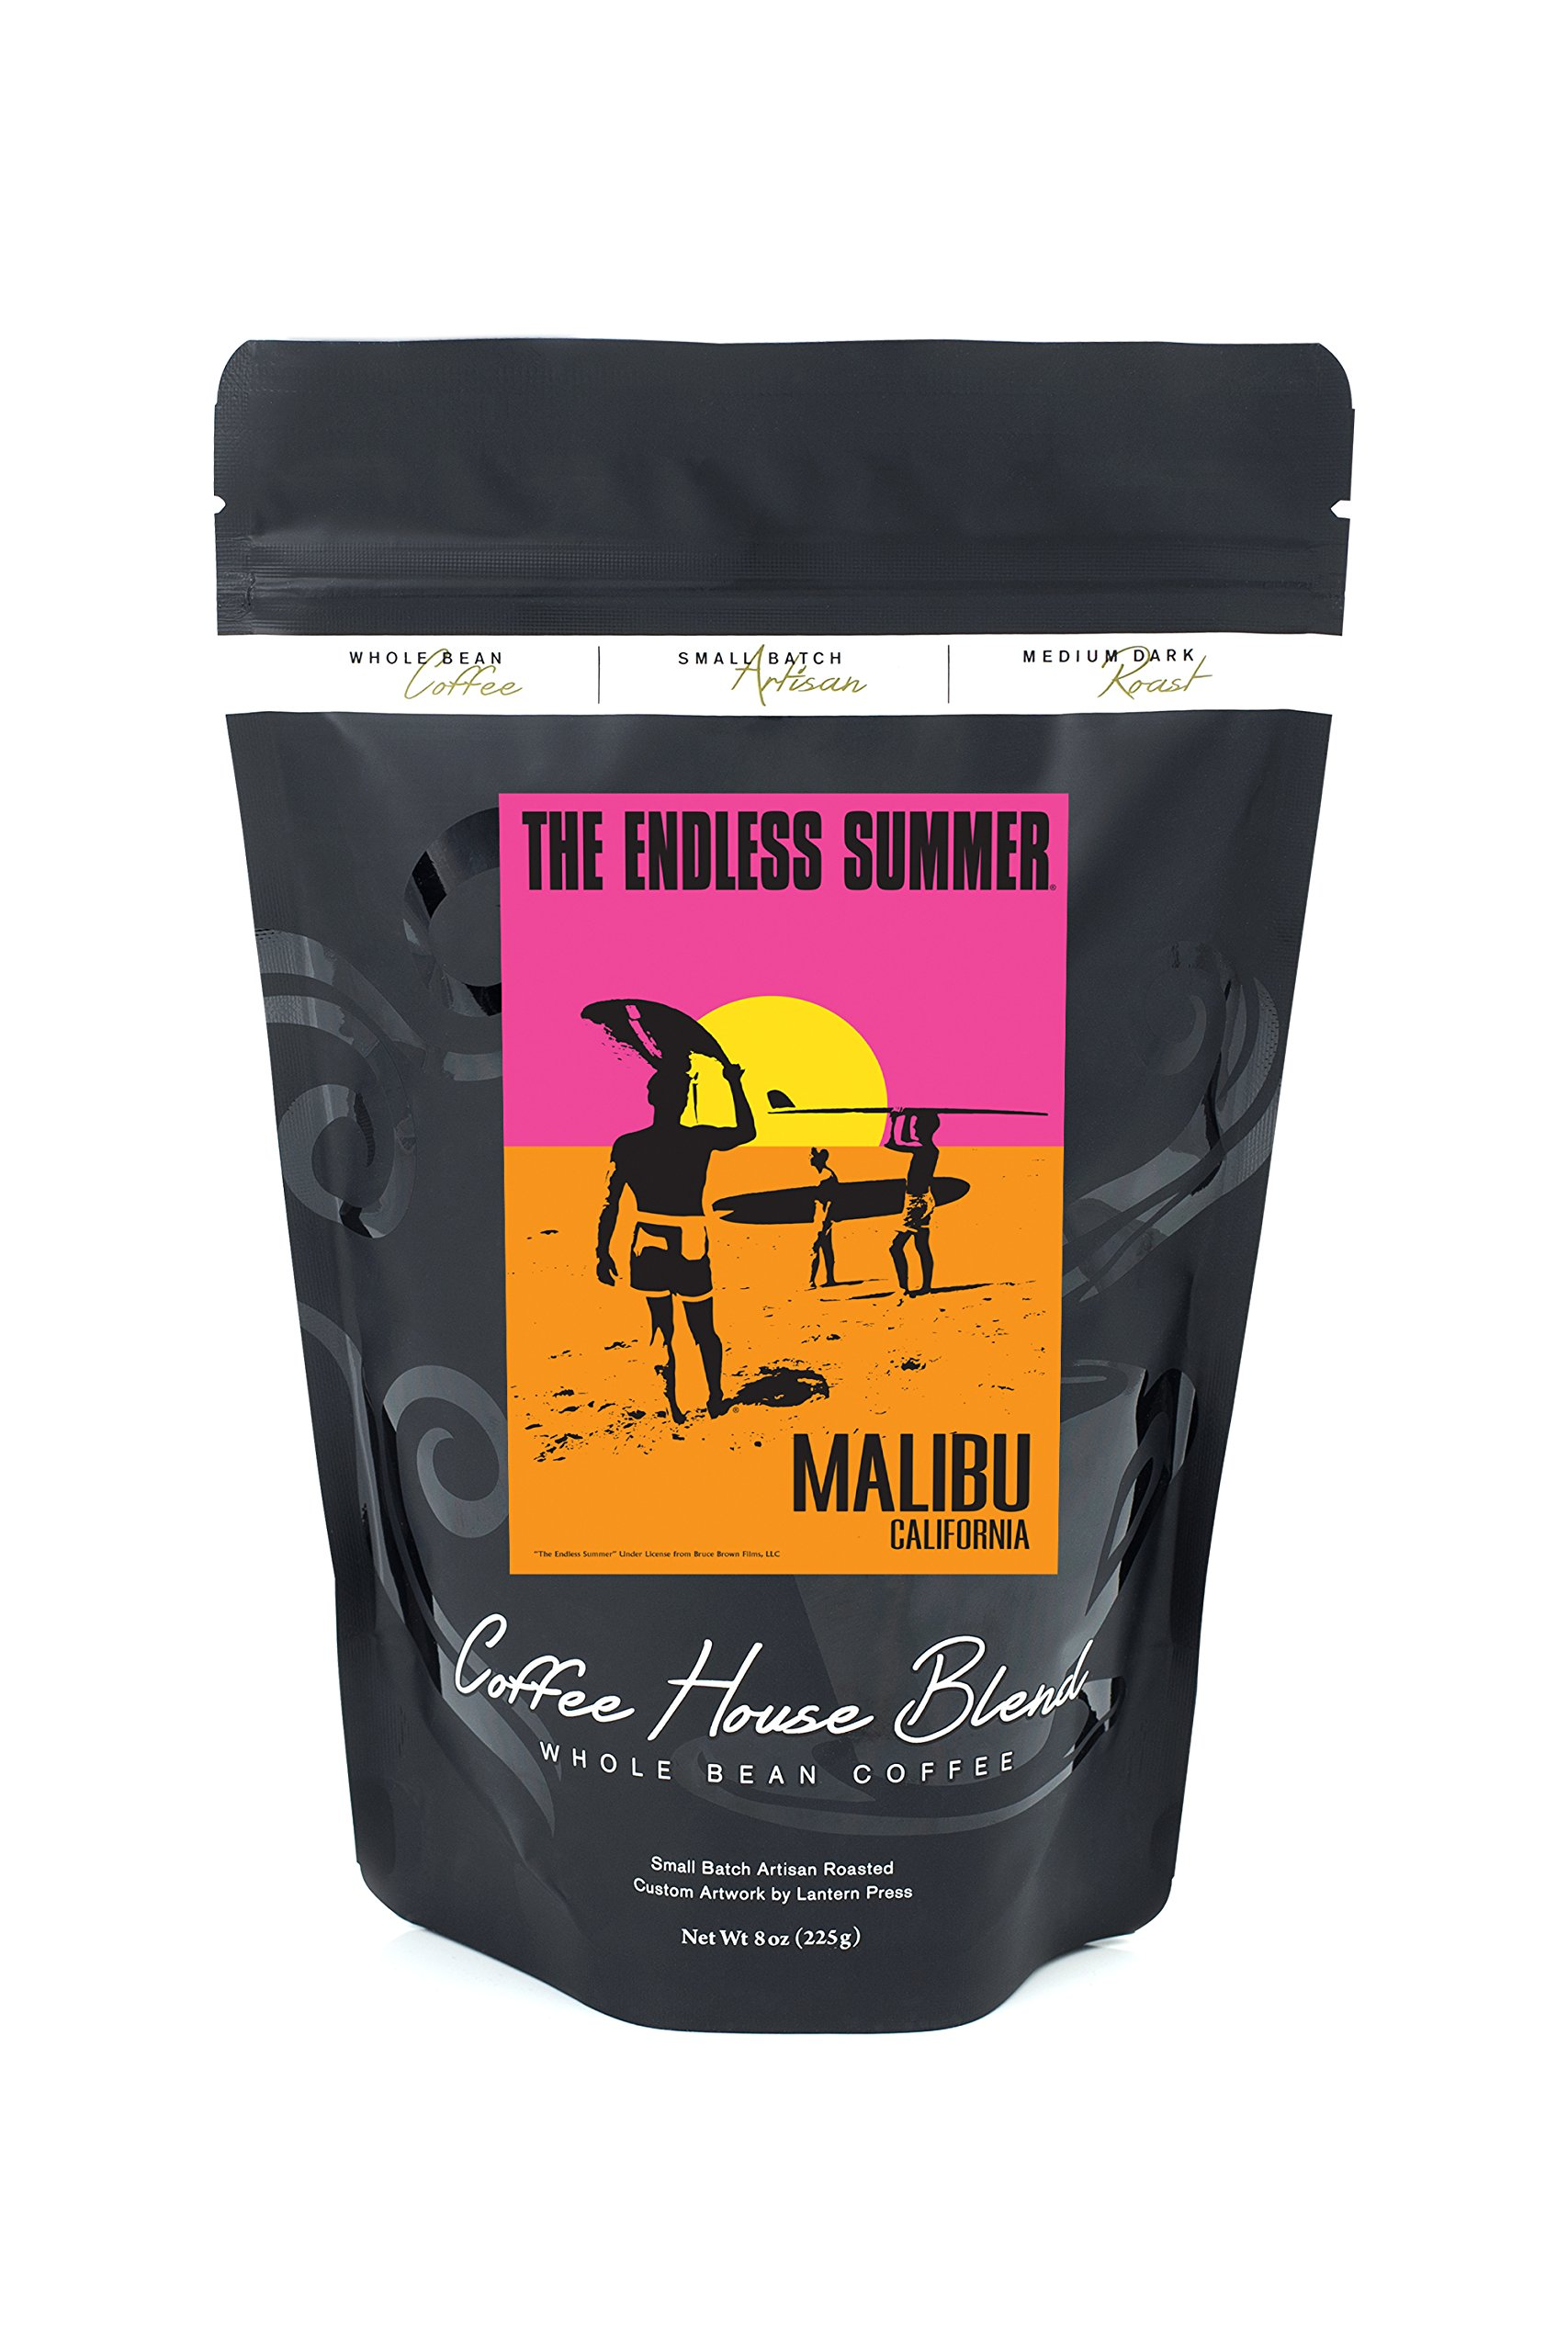 Malibu, California - The Endless Summer - Original Movie Poster (8oz Whole Bean Small Batch Artisan Coffee - Bold & Strong Medium Dark Roast w/ Artwork)